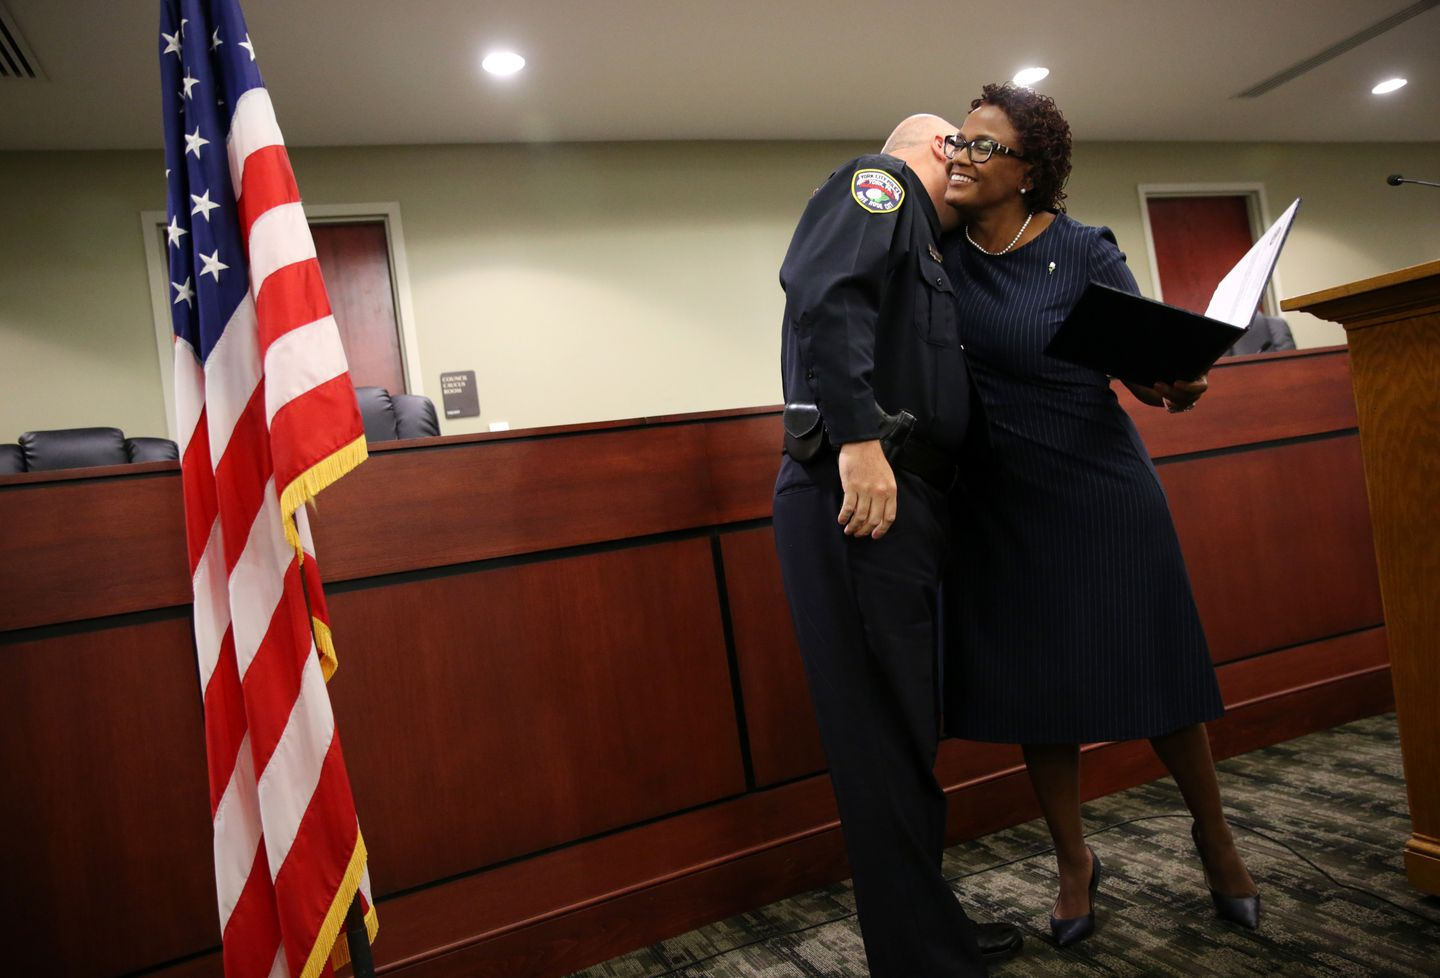 York Mayor Kim Bracey congratulated York police Officer Daniel Aikey after promoting him to lieutenant in a City Hall cermony on Oct. 25.